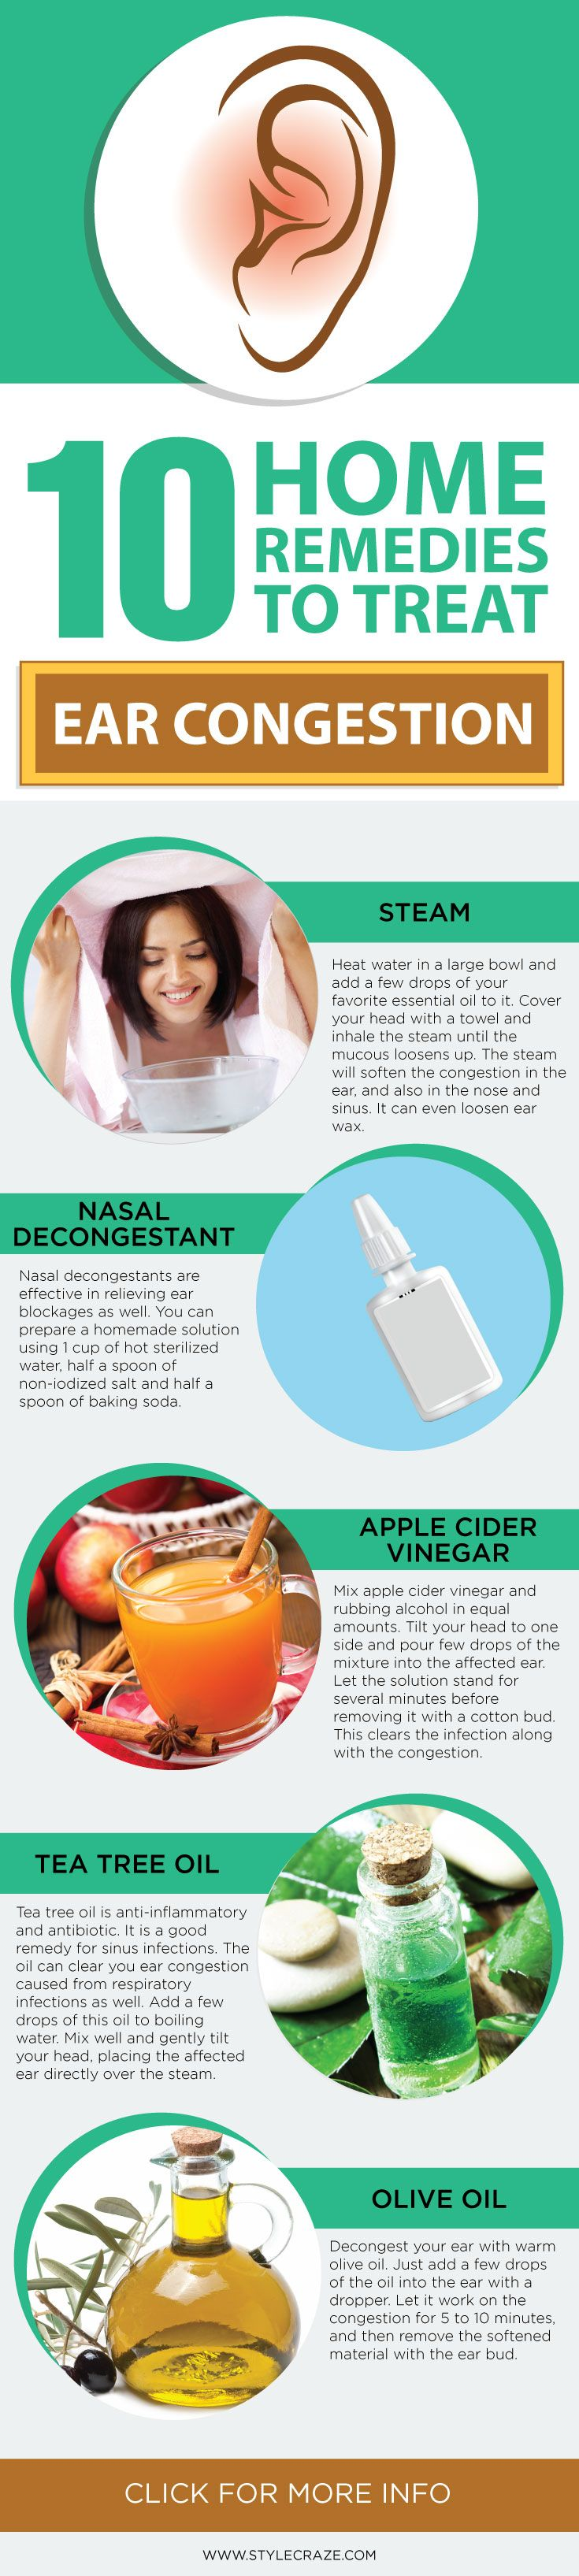 10 Effective #Homeremedies To Treat Ear Congestion